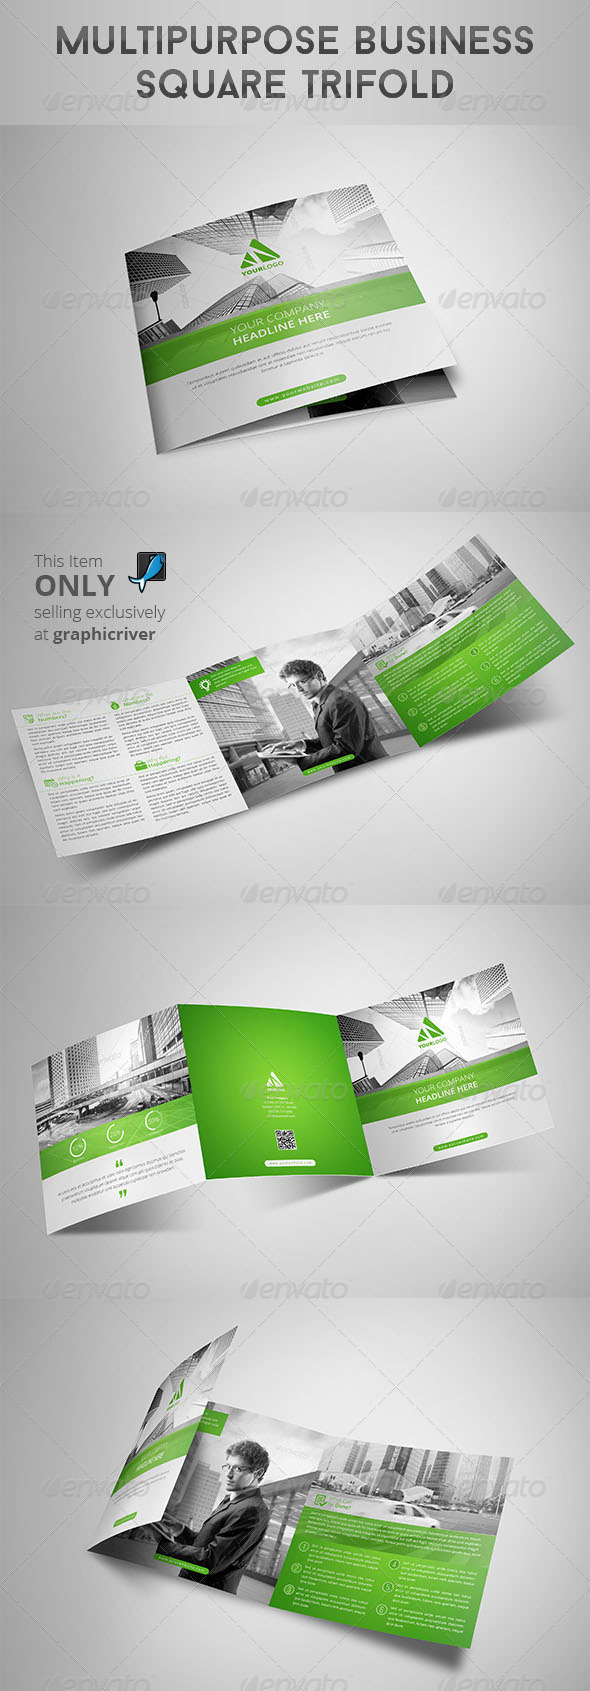 GraphicRiver Multipurpose Business Square Trifold 8541132